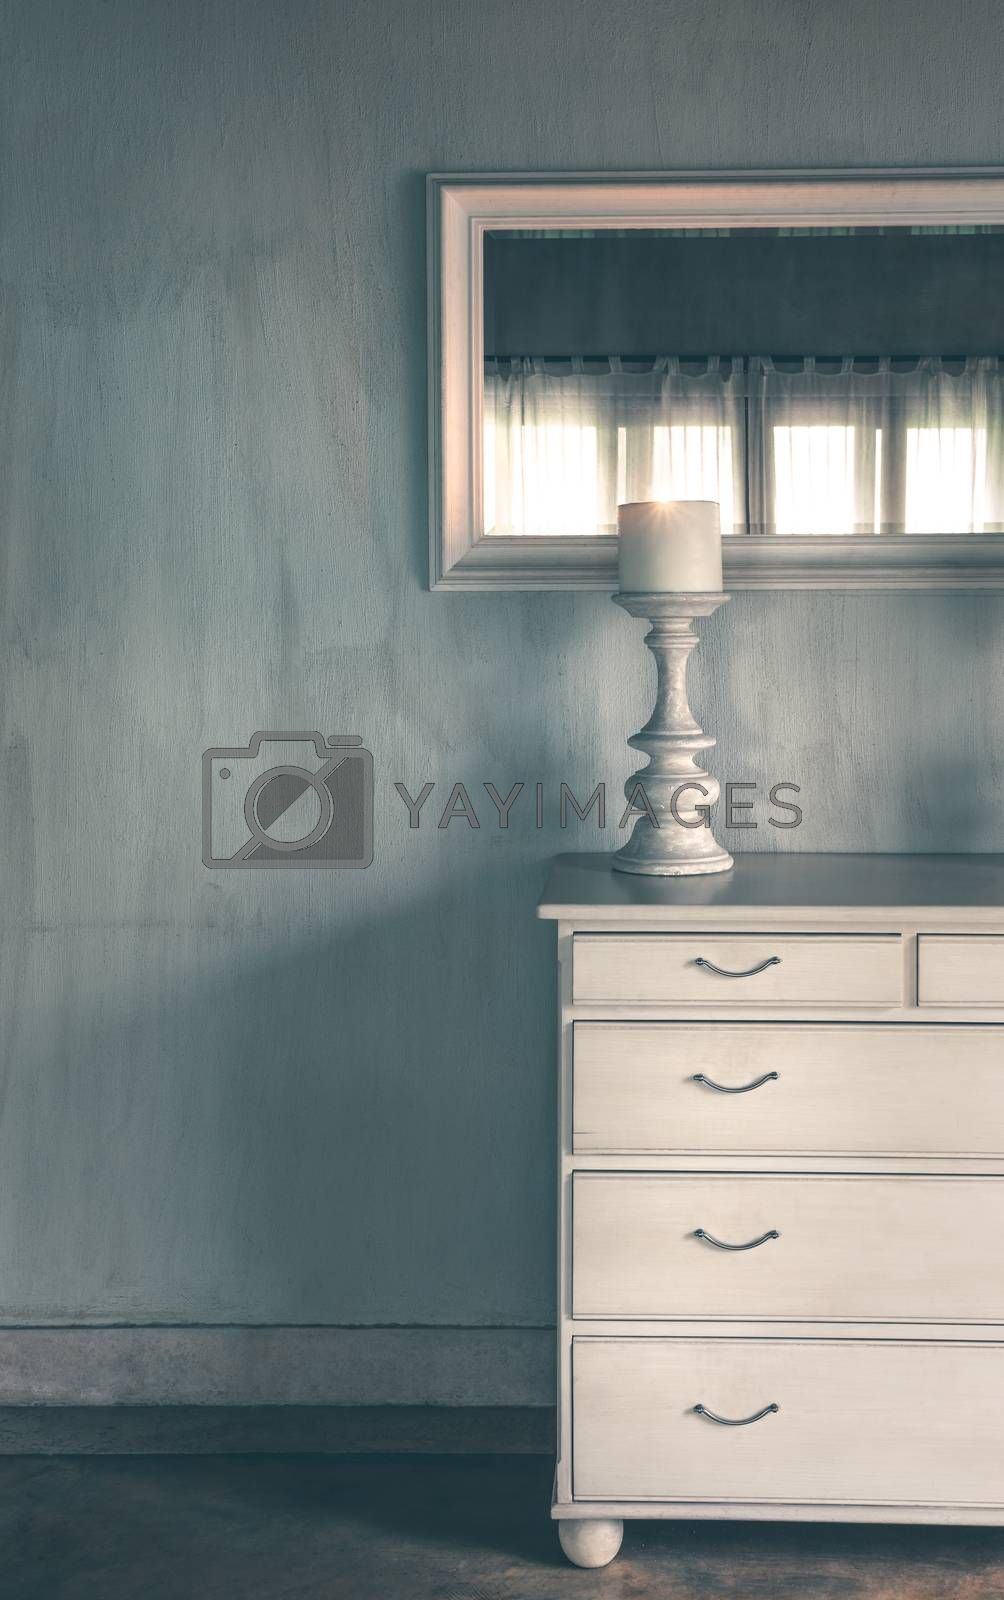 Vintage Style Room Decor. White Furniture over Modern Walls Background. Cozy Home Interior. Contemporary Luxury Elegant Mansion.